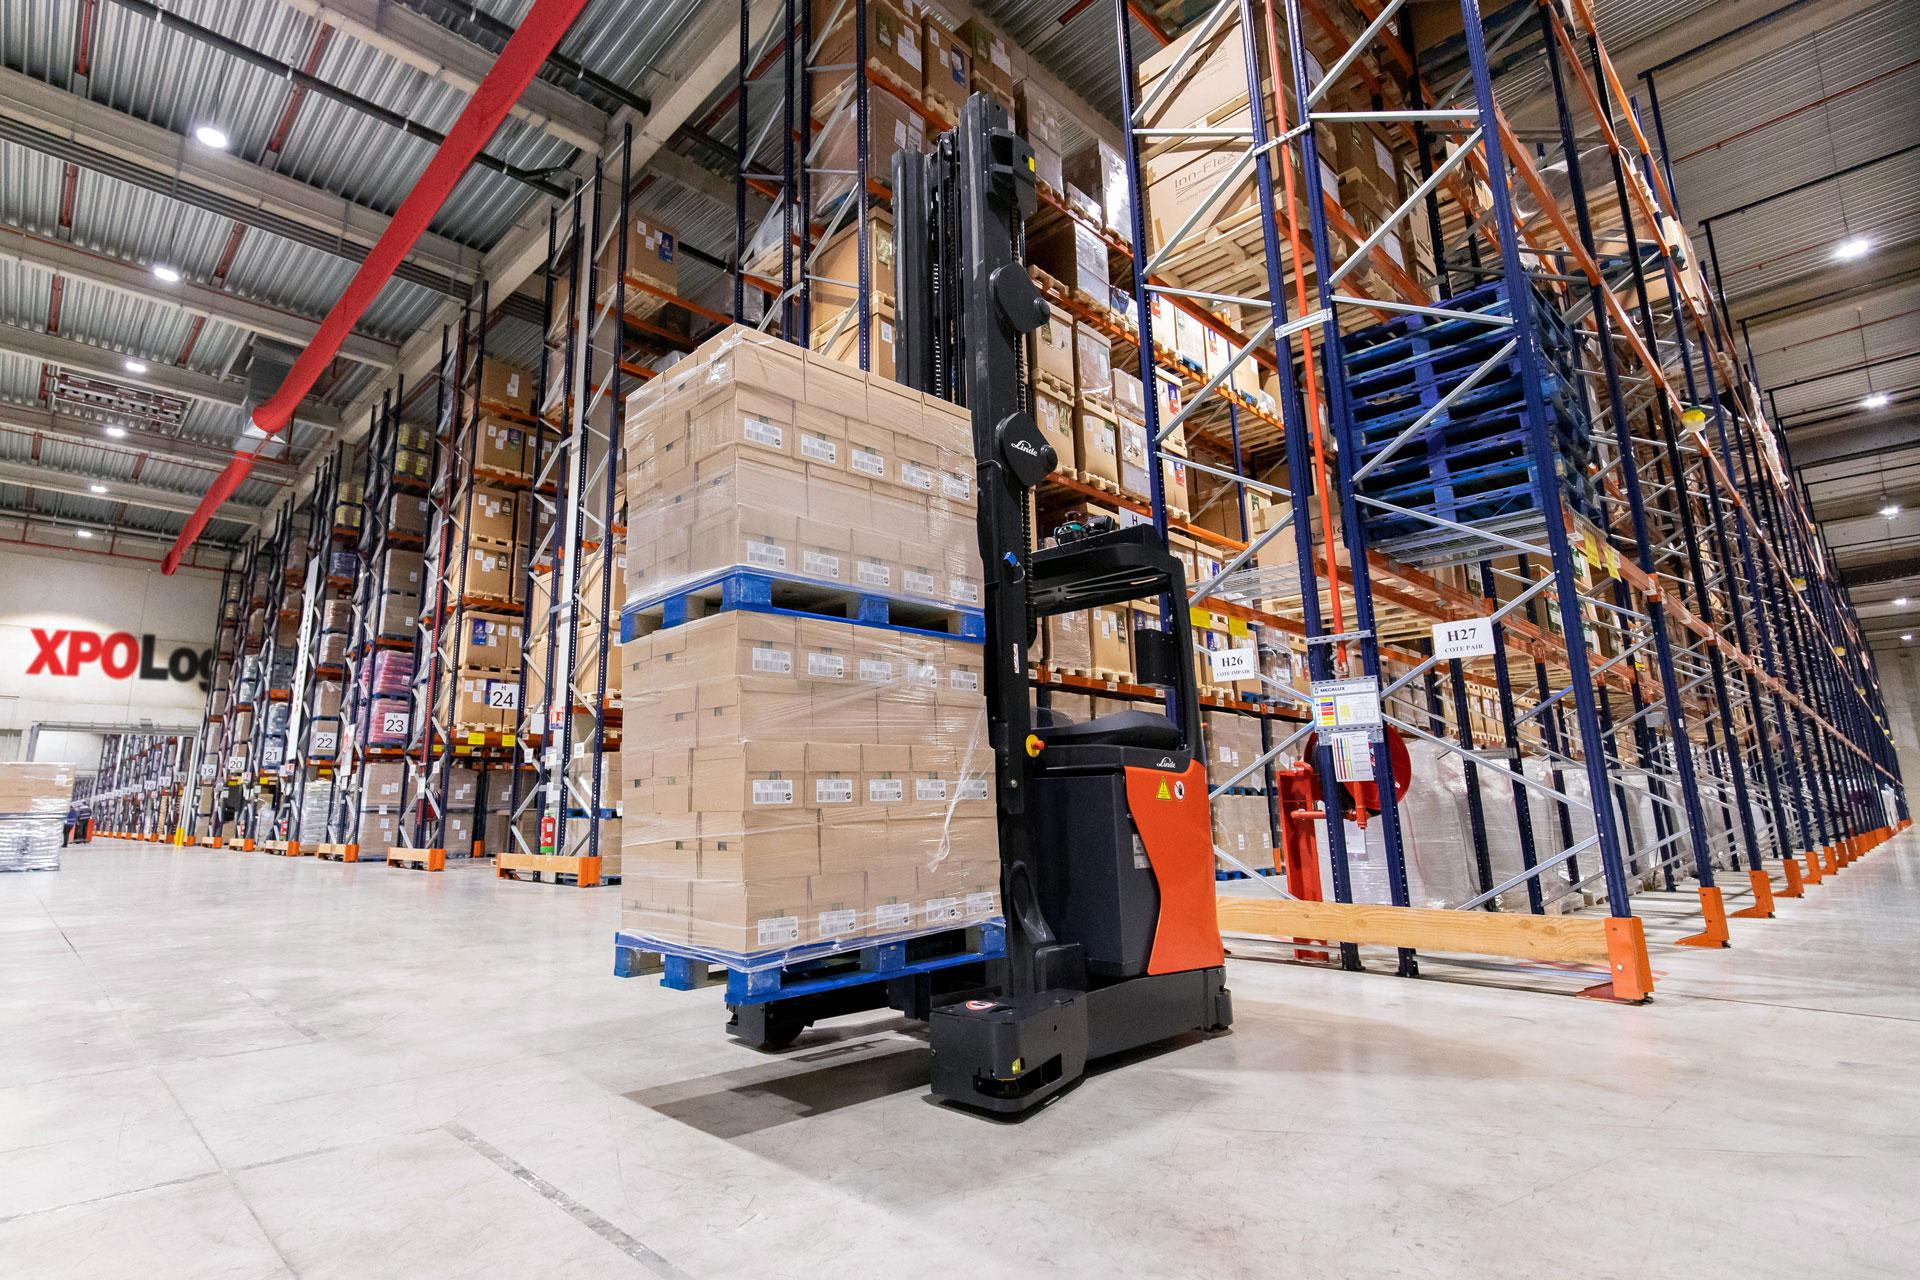 Forklift with goods in XPO warehouse.